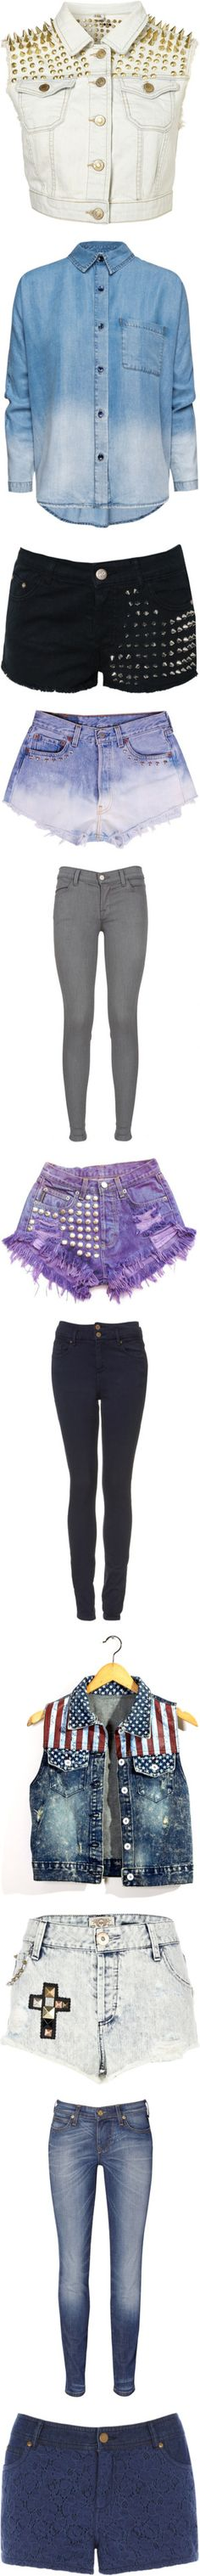 """""""I love denim"""" by beautyismything ❤ liked on Polyvore"""